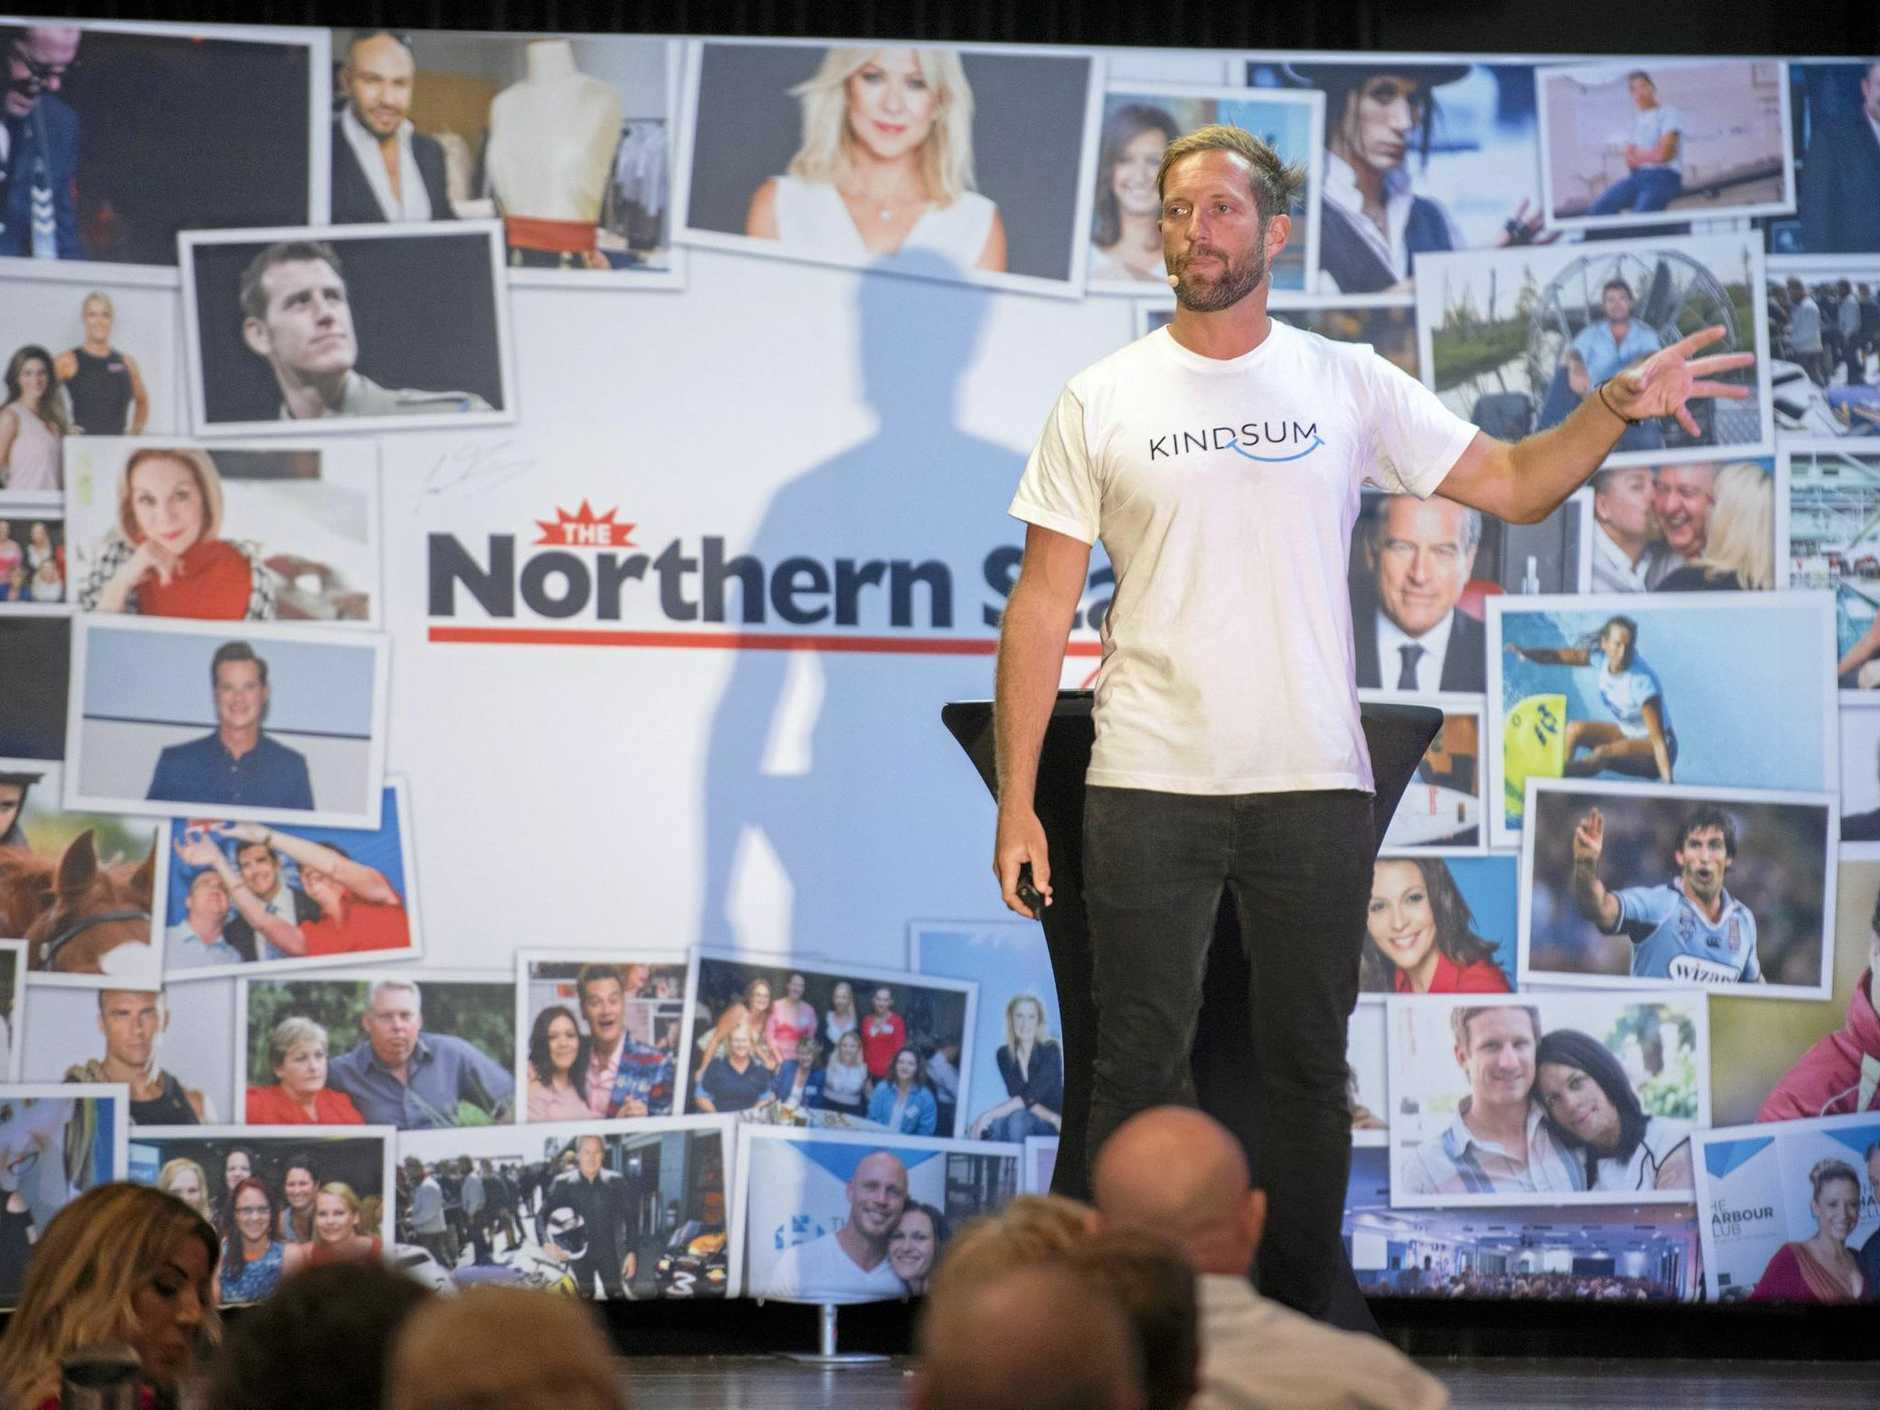 Sebastian Terry speaking at The Northern Star Club event at Ballina RSL on Friday night.